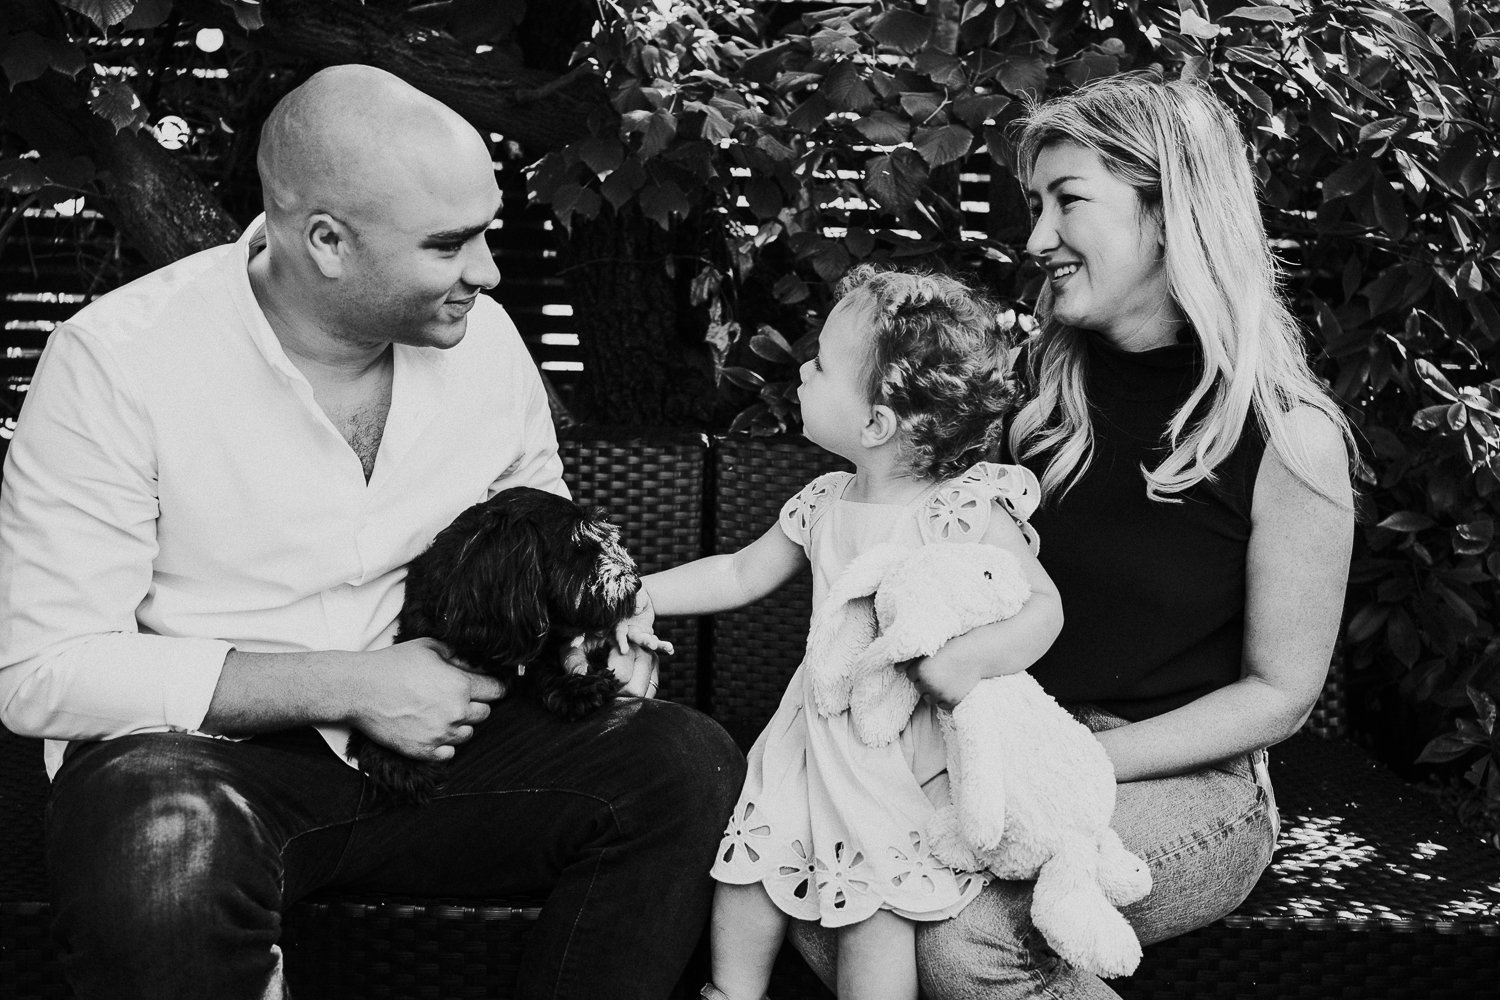 NORTH KENSINGTON FAMILY PHOTO SESSION black and white shot of family and dog sitting on sofa in garden